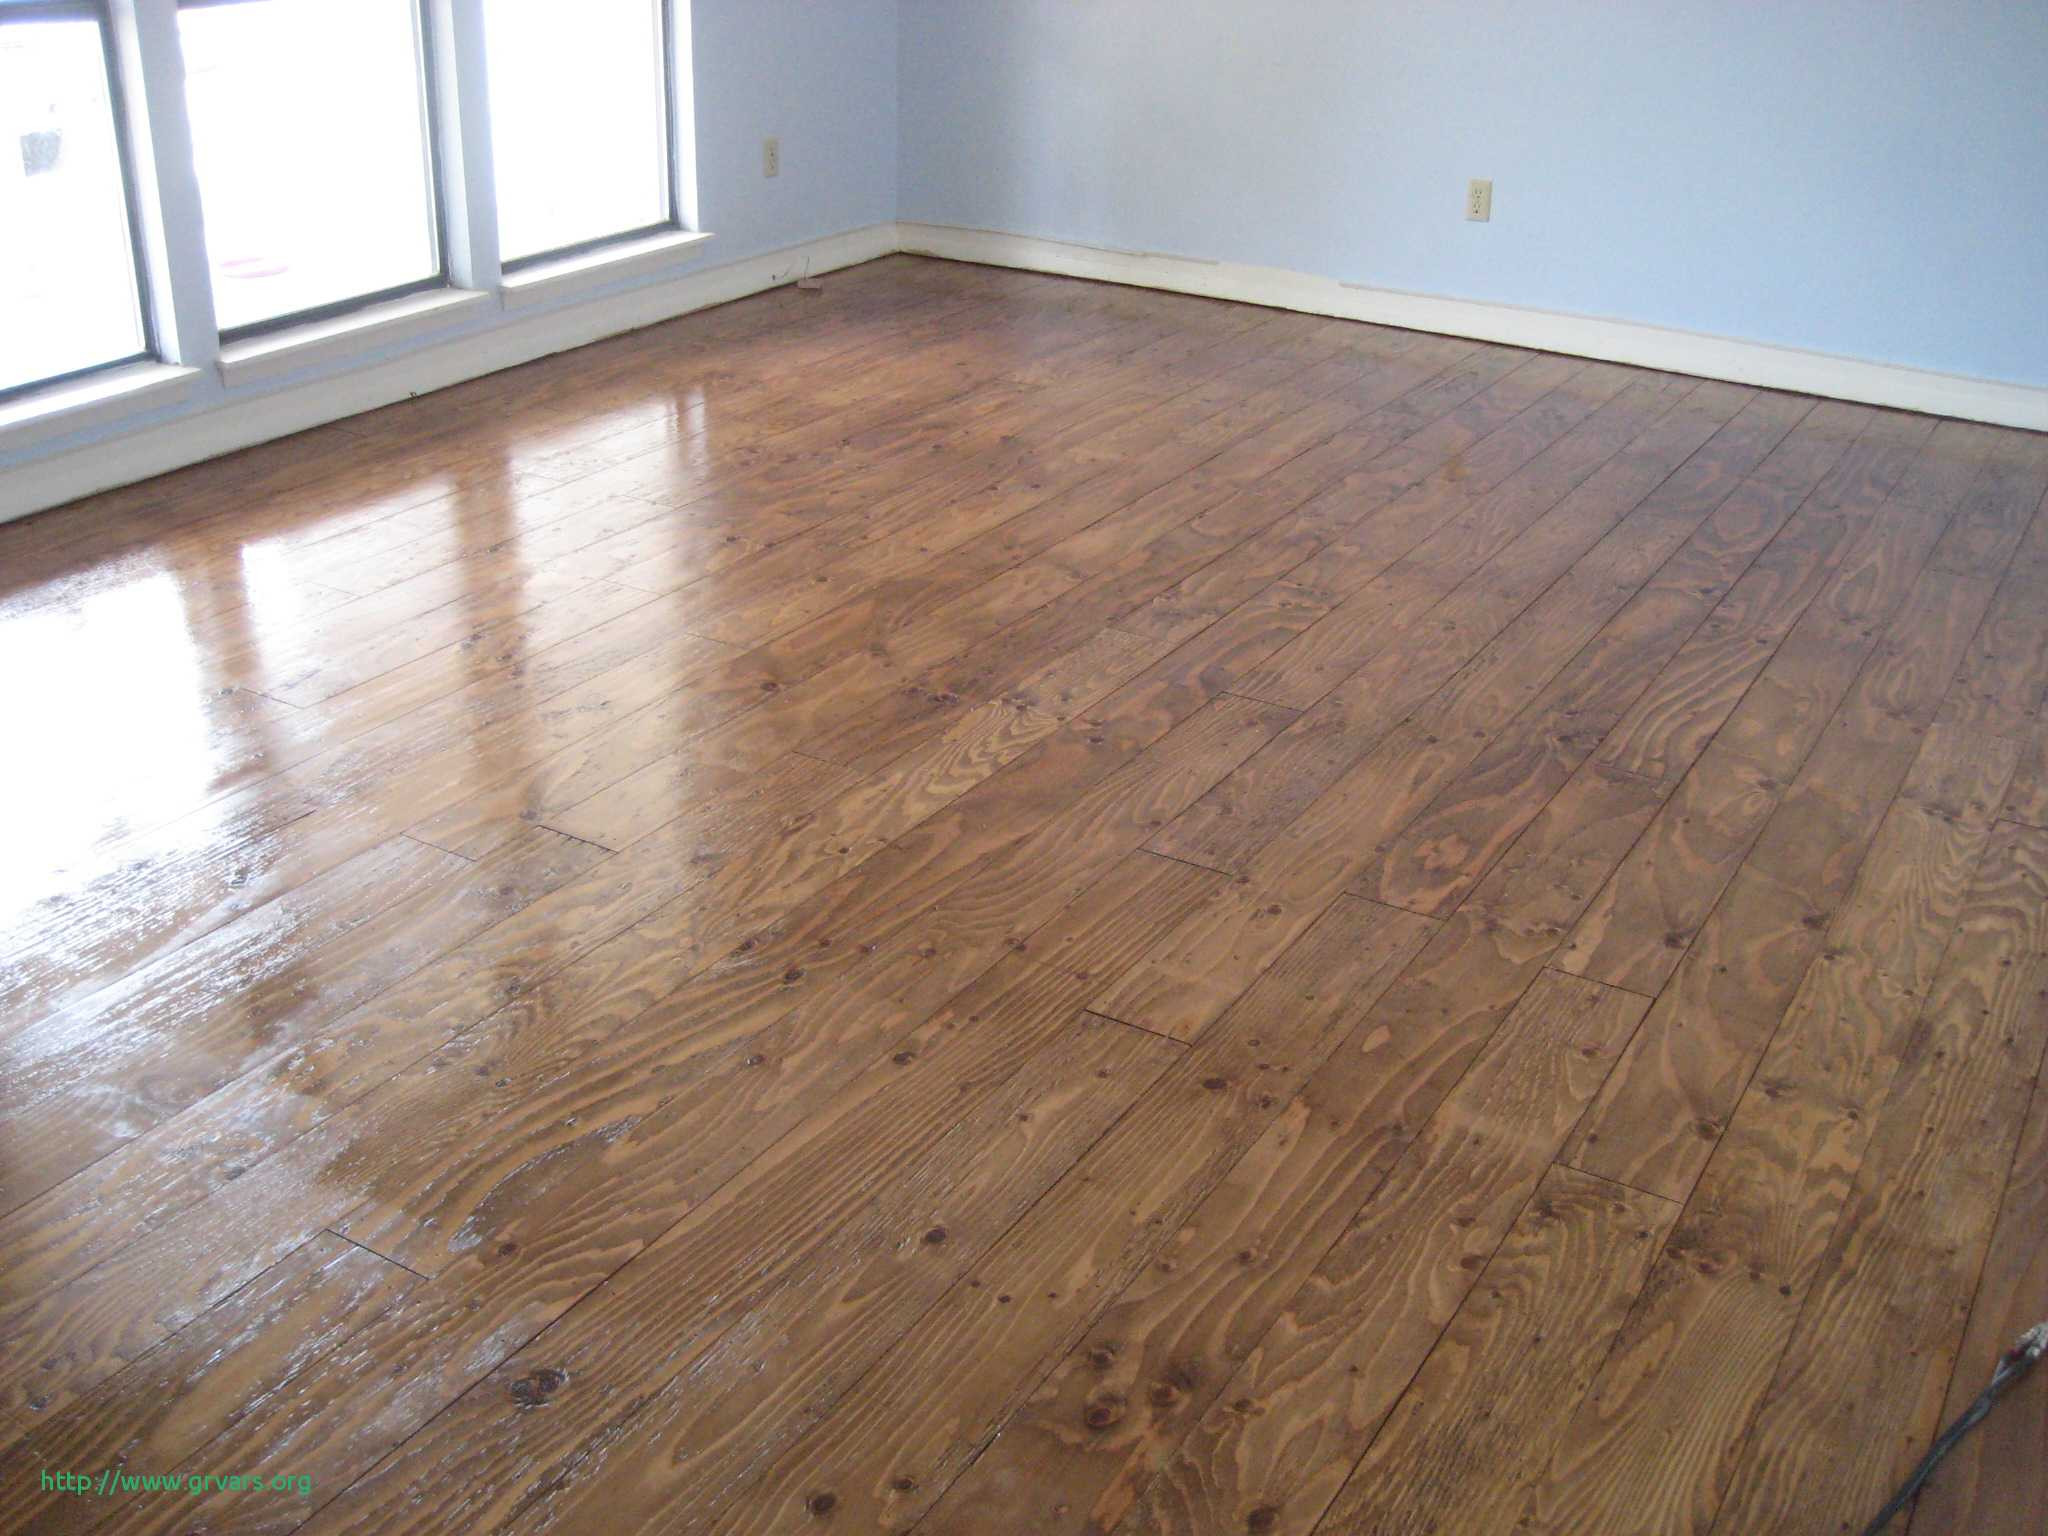 Hardwood Floors with Wood Trim